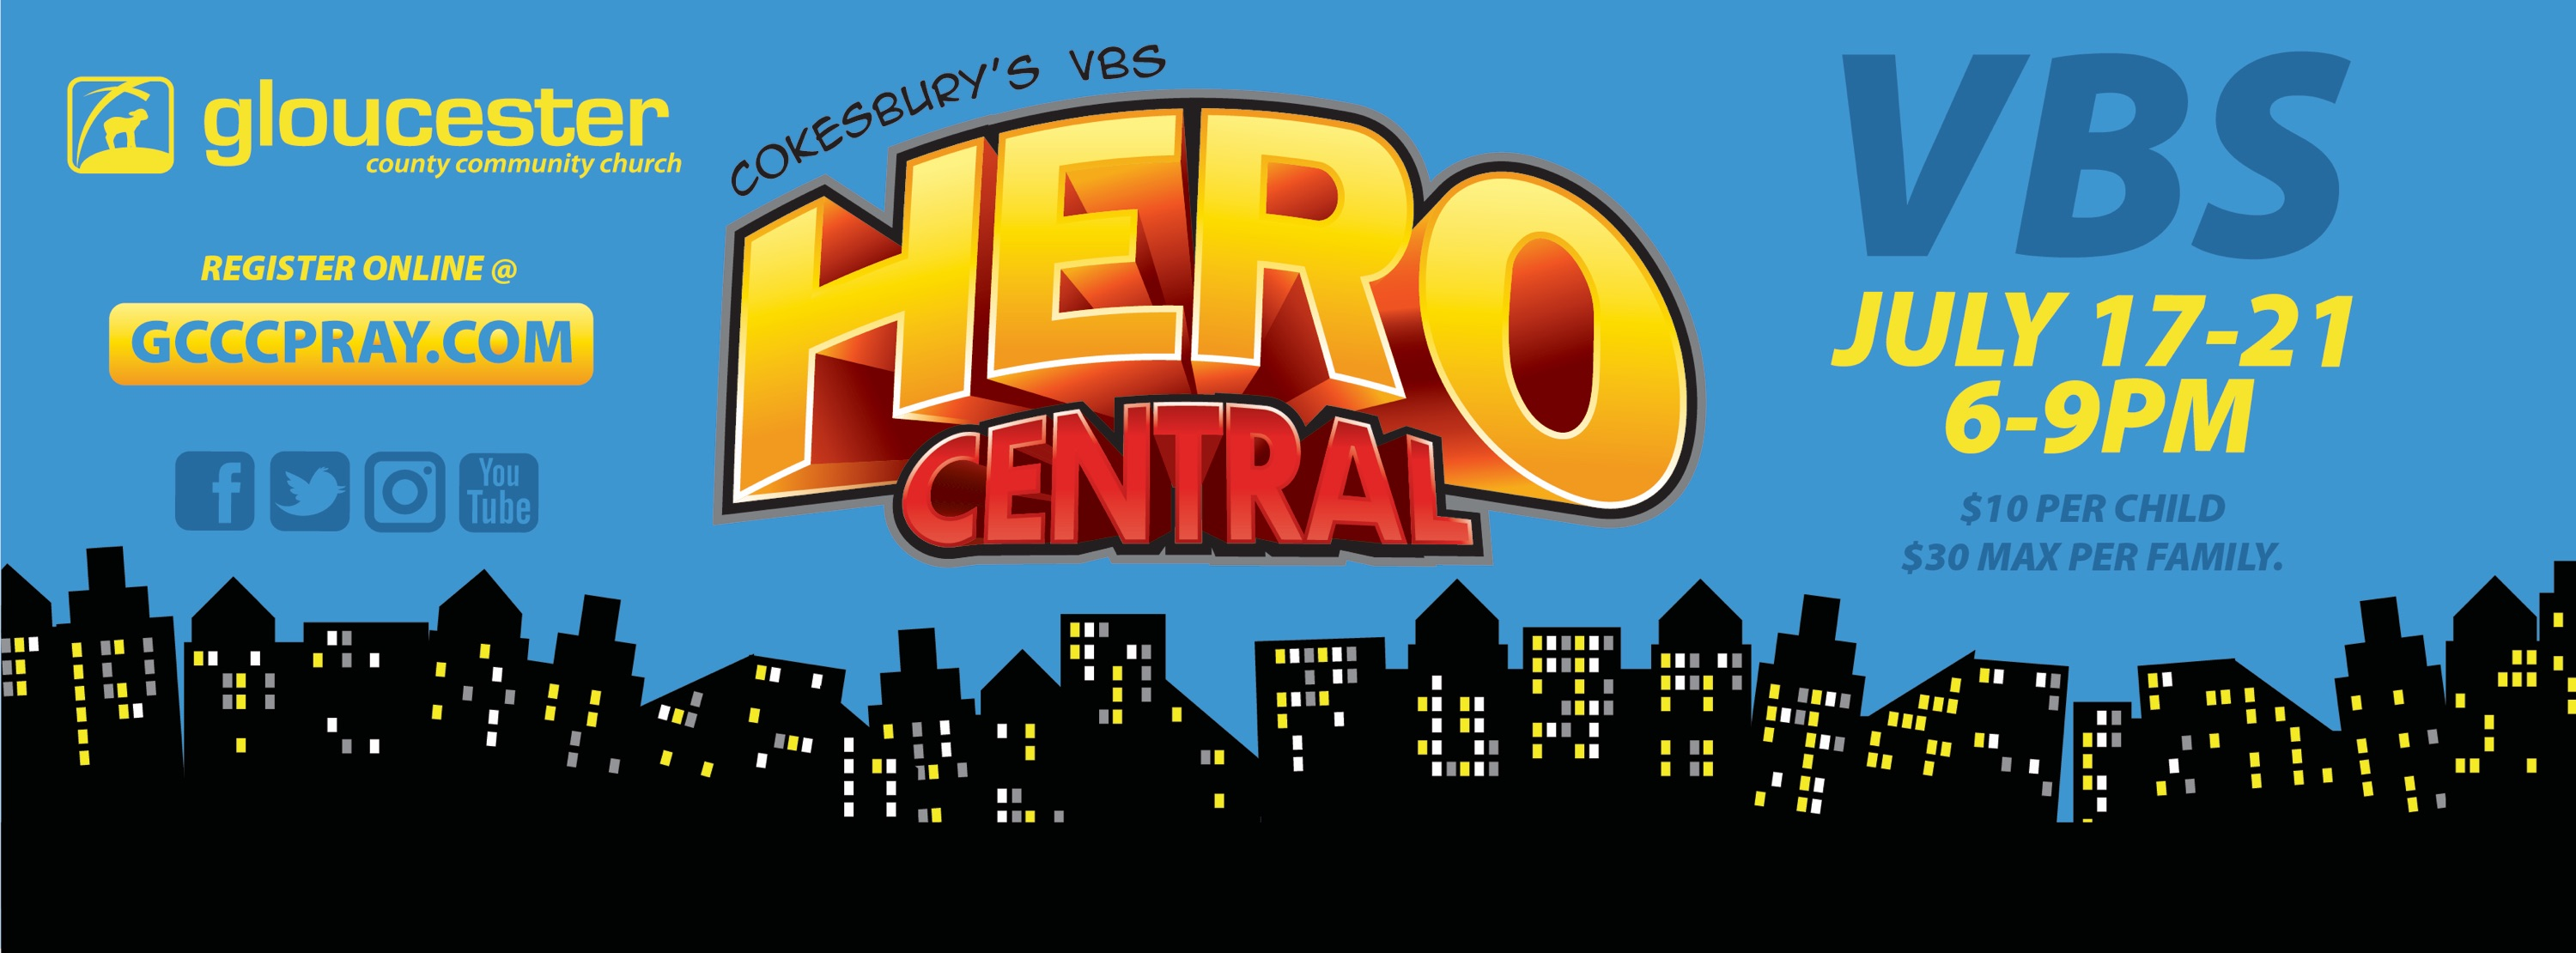 2017 Hero Central VBS @ Gloucester County Community Church logo